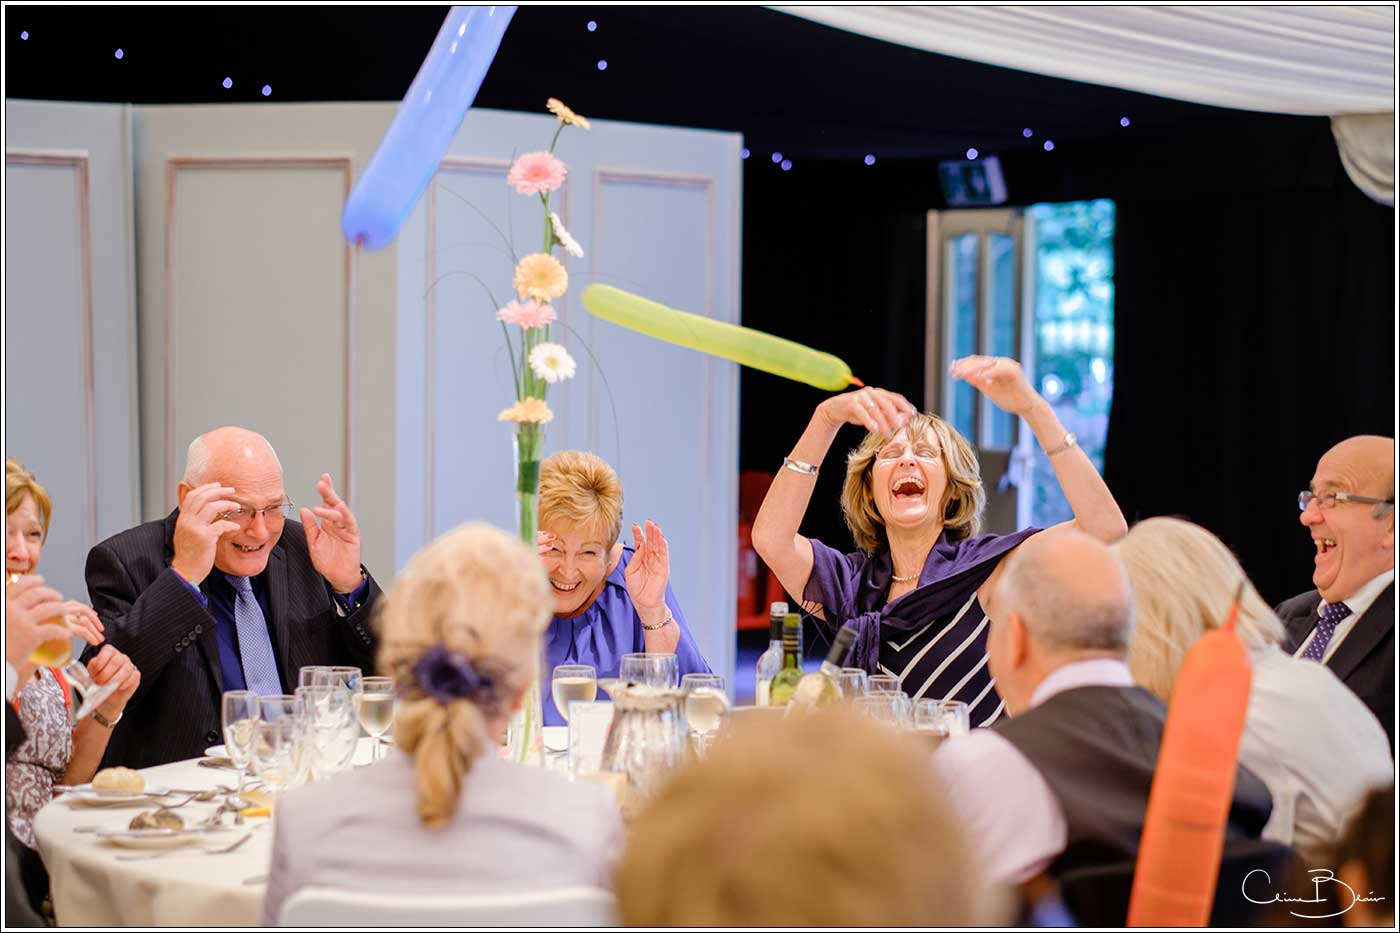 Coombe Abbey wedding photography showing guests letting off their balloons around the reception room